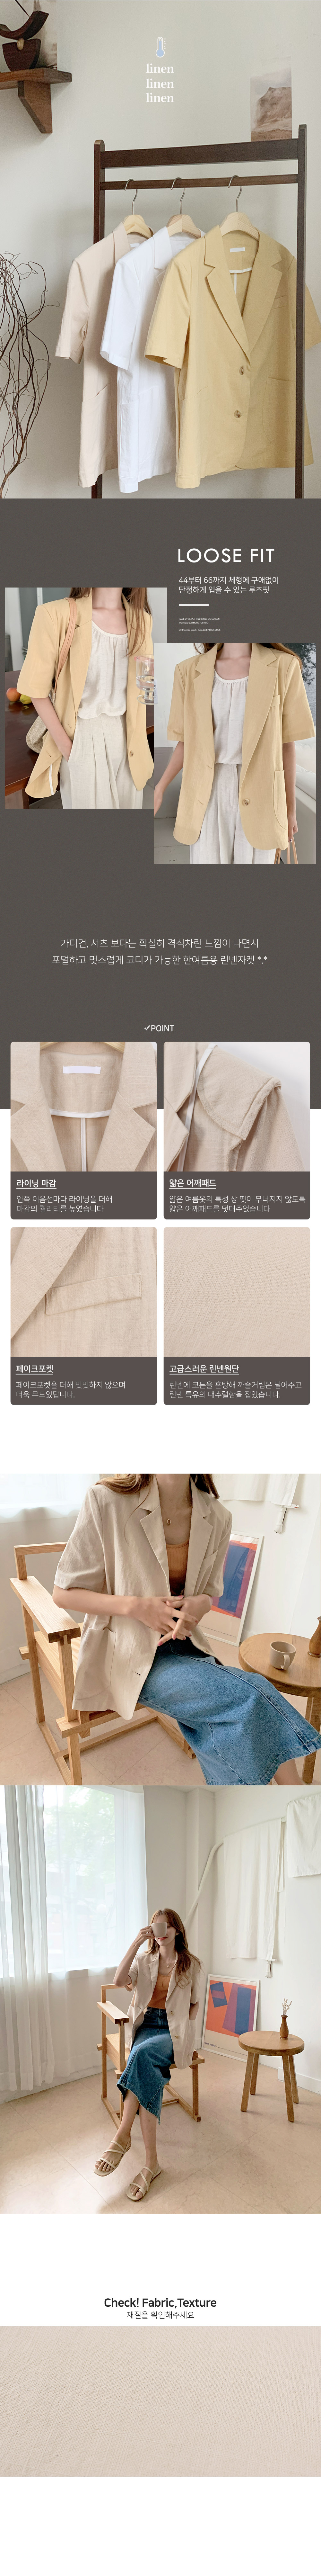 Fedo loose fit daily linen jacket